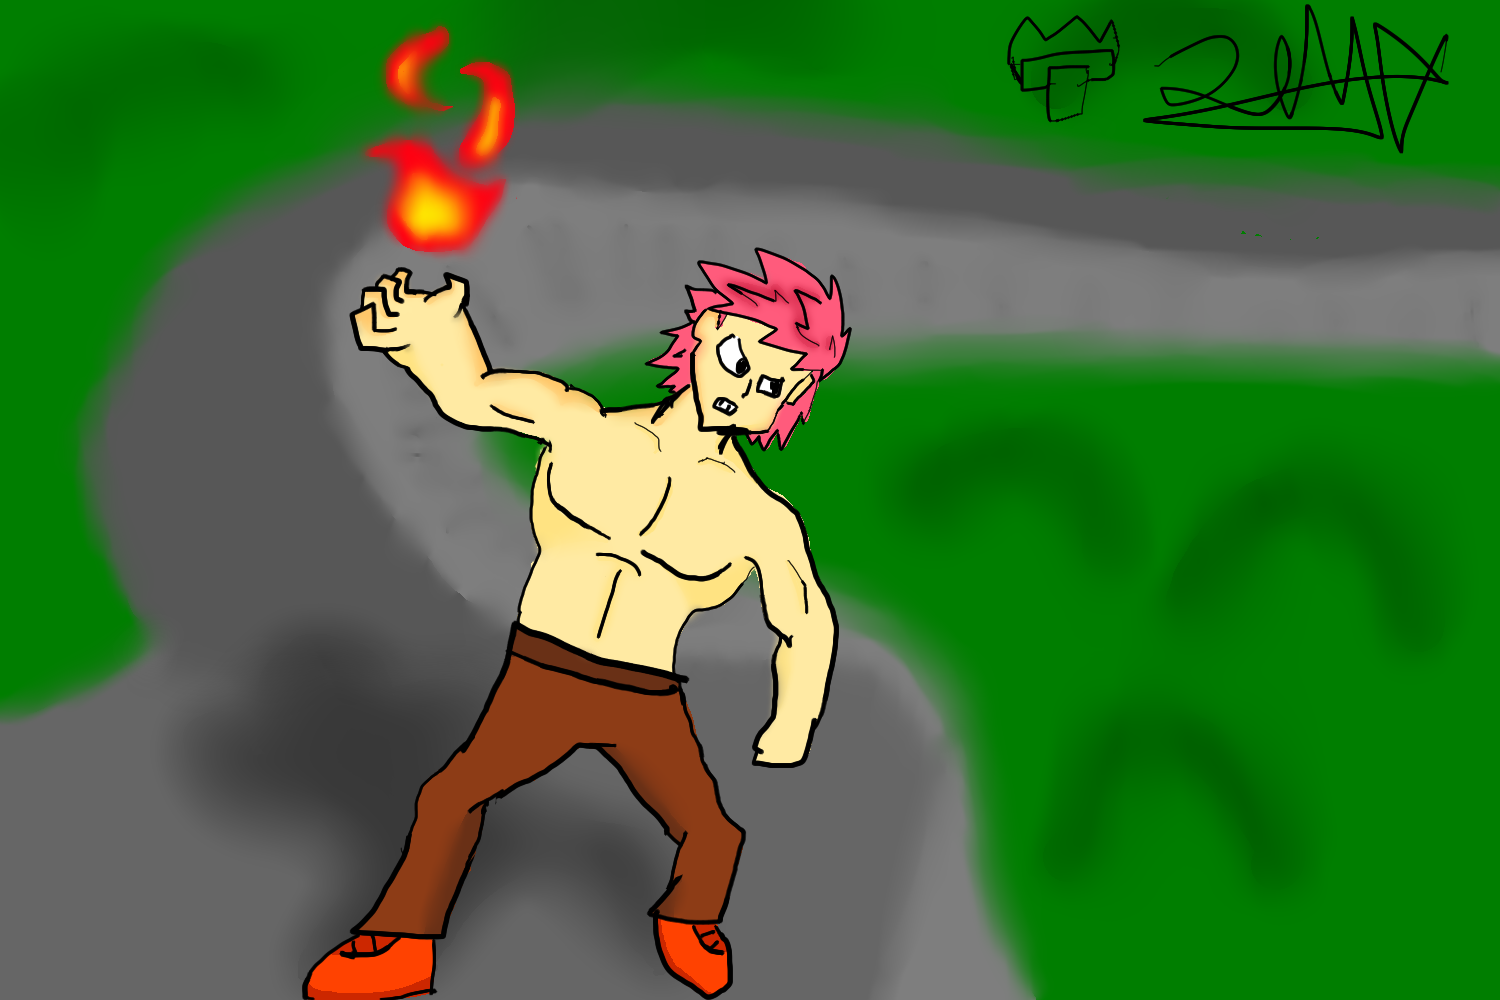 FIRE GUY THE FLAME SLY